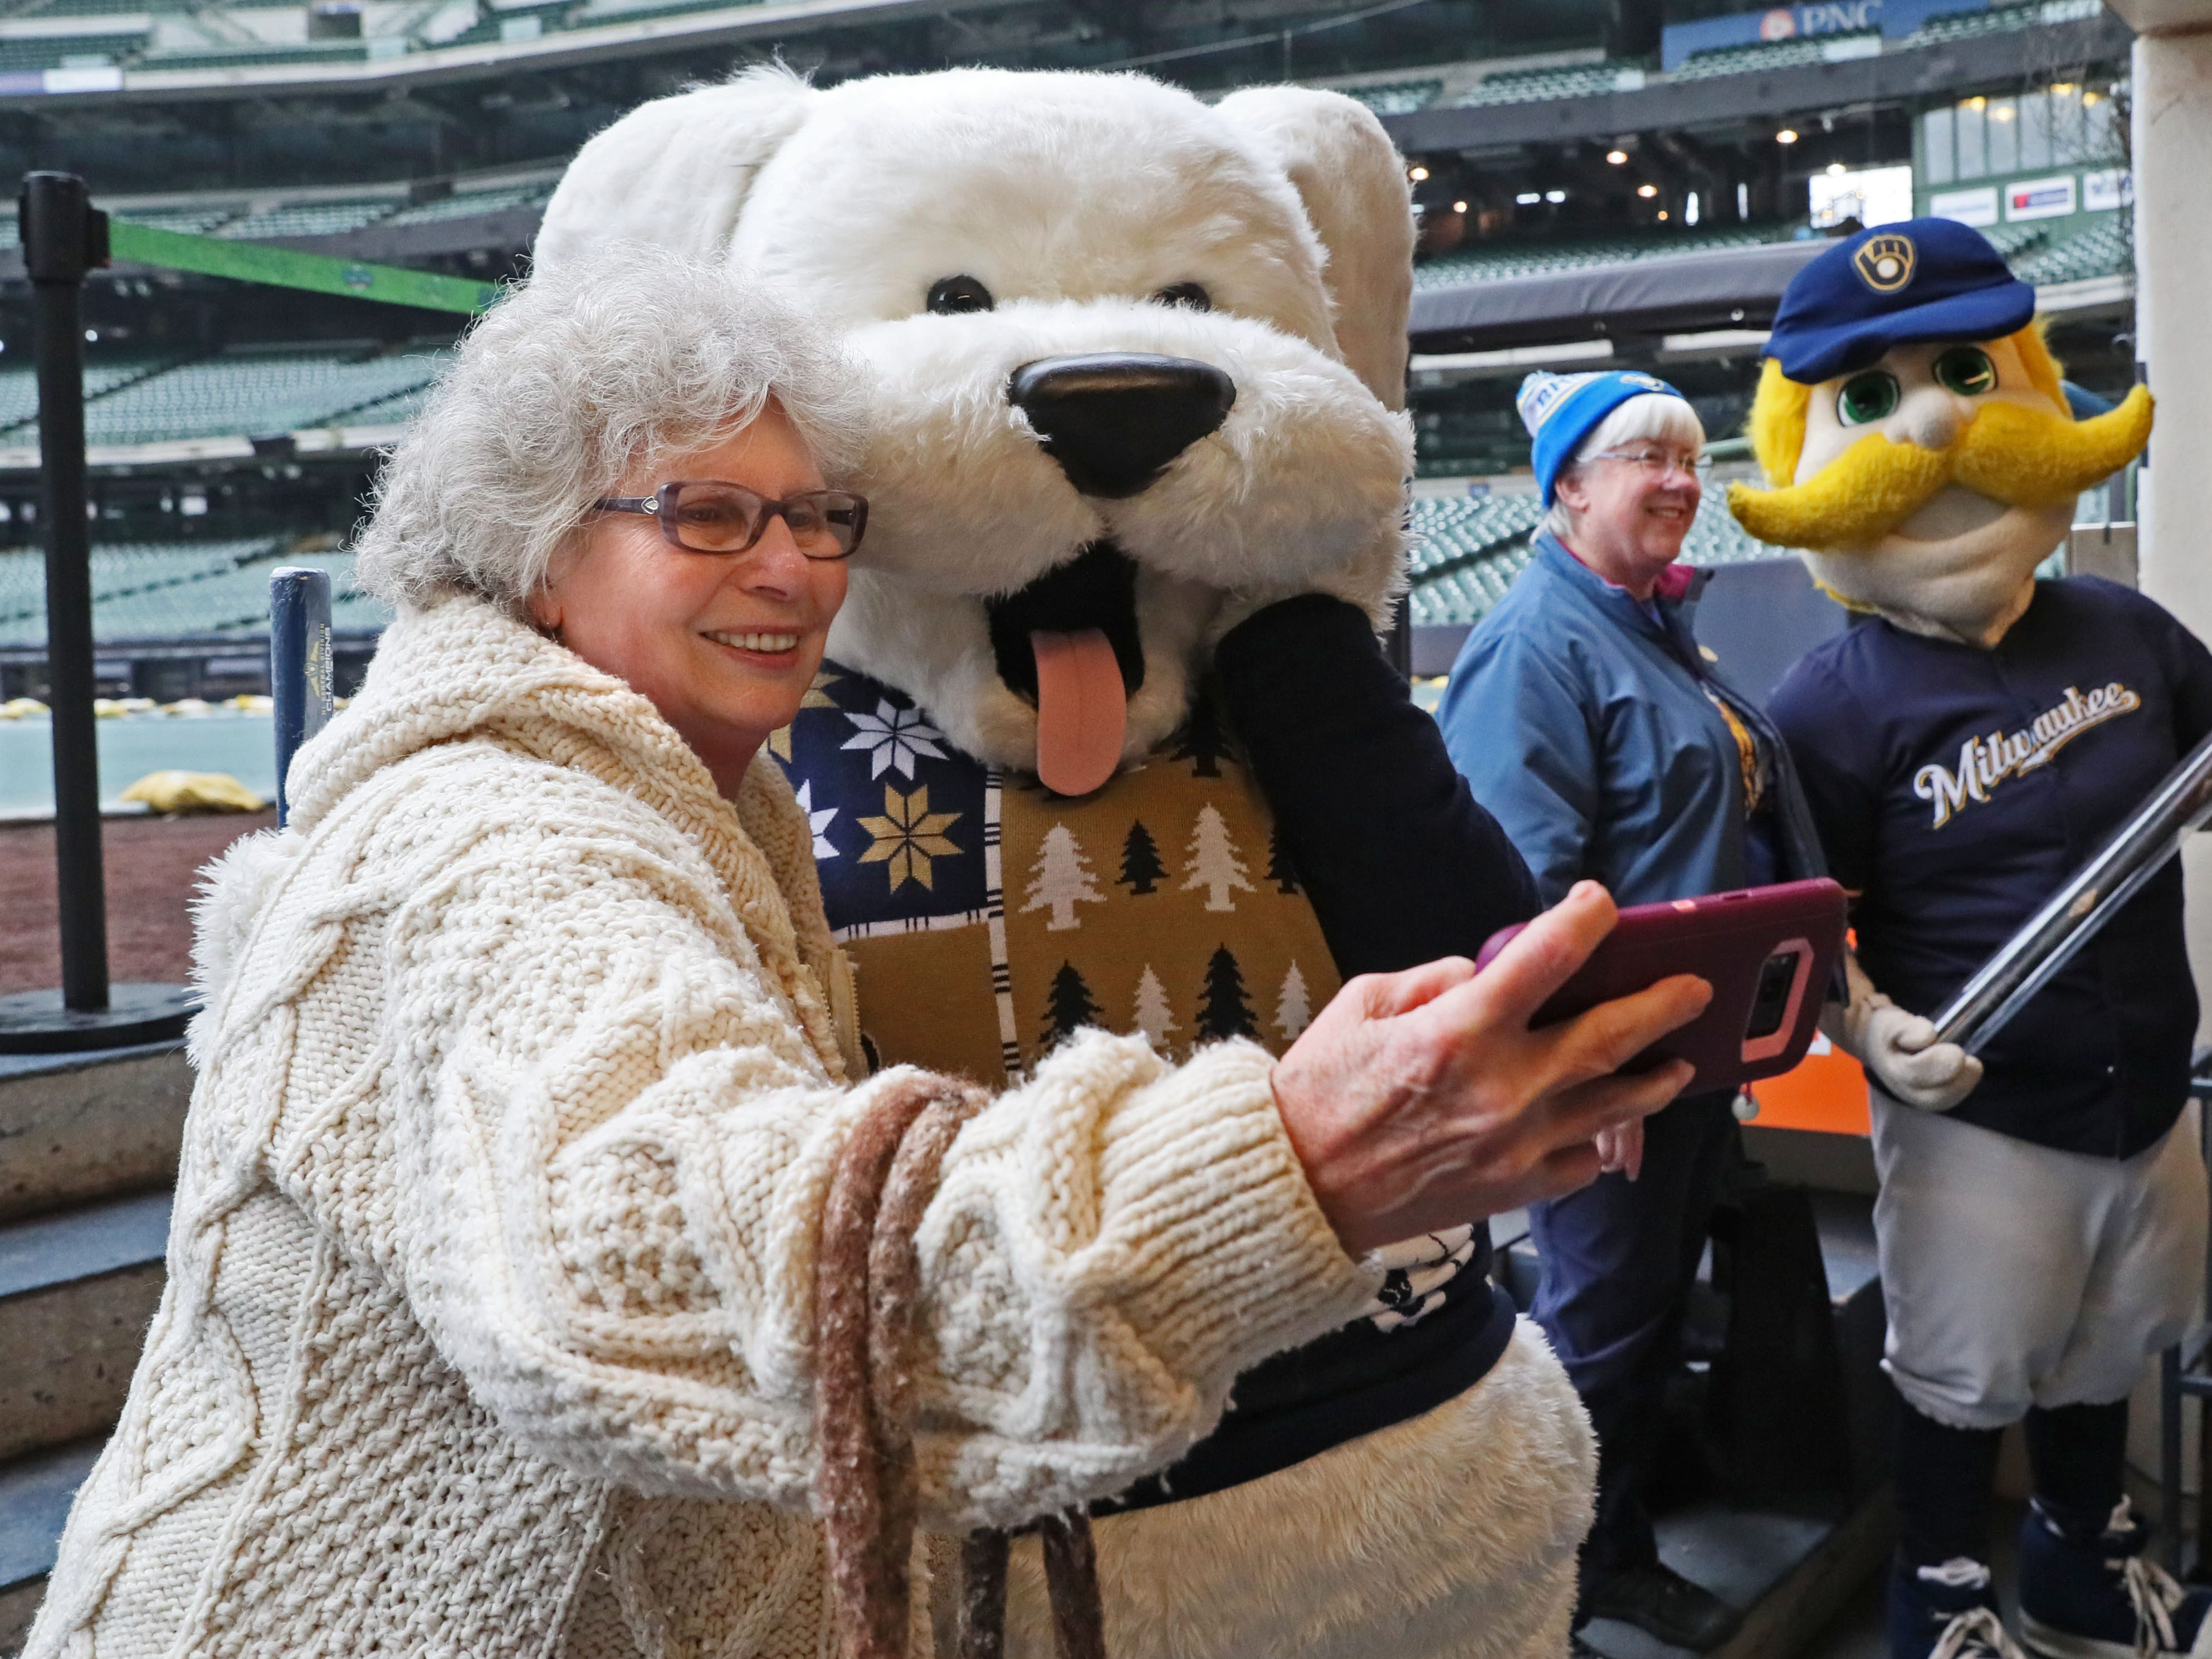 Paula Gutmanis of Franklin lines up a selfie with a mascot of Hank, the Brewers' team dog, while in the background, Laura Hemming of Madison poses for a photo with Bernie Brewer.